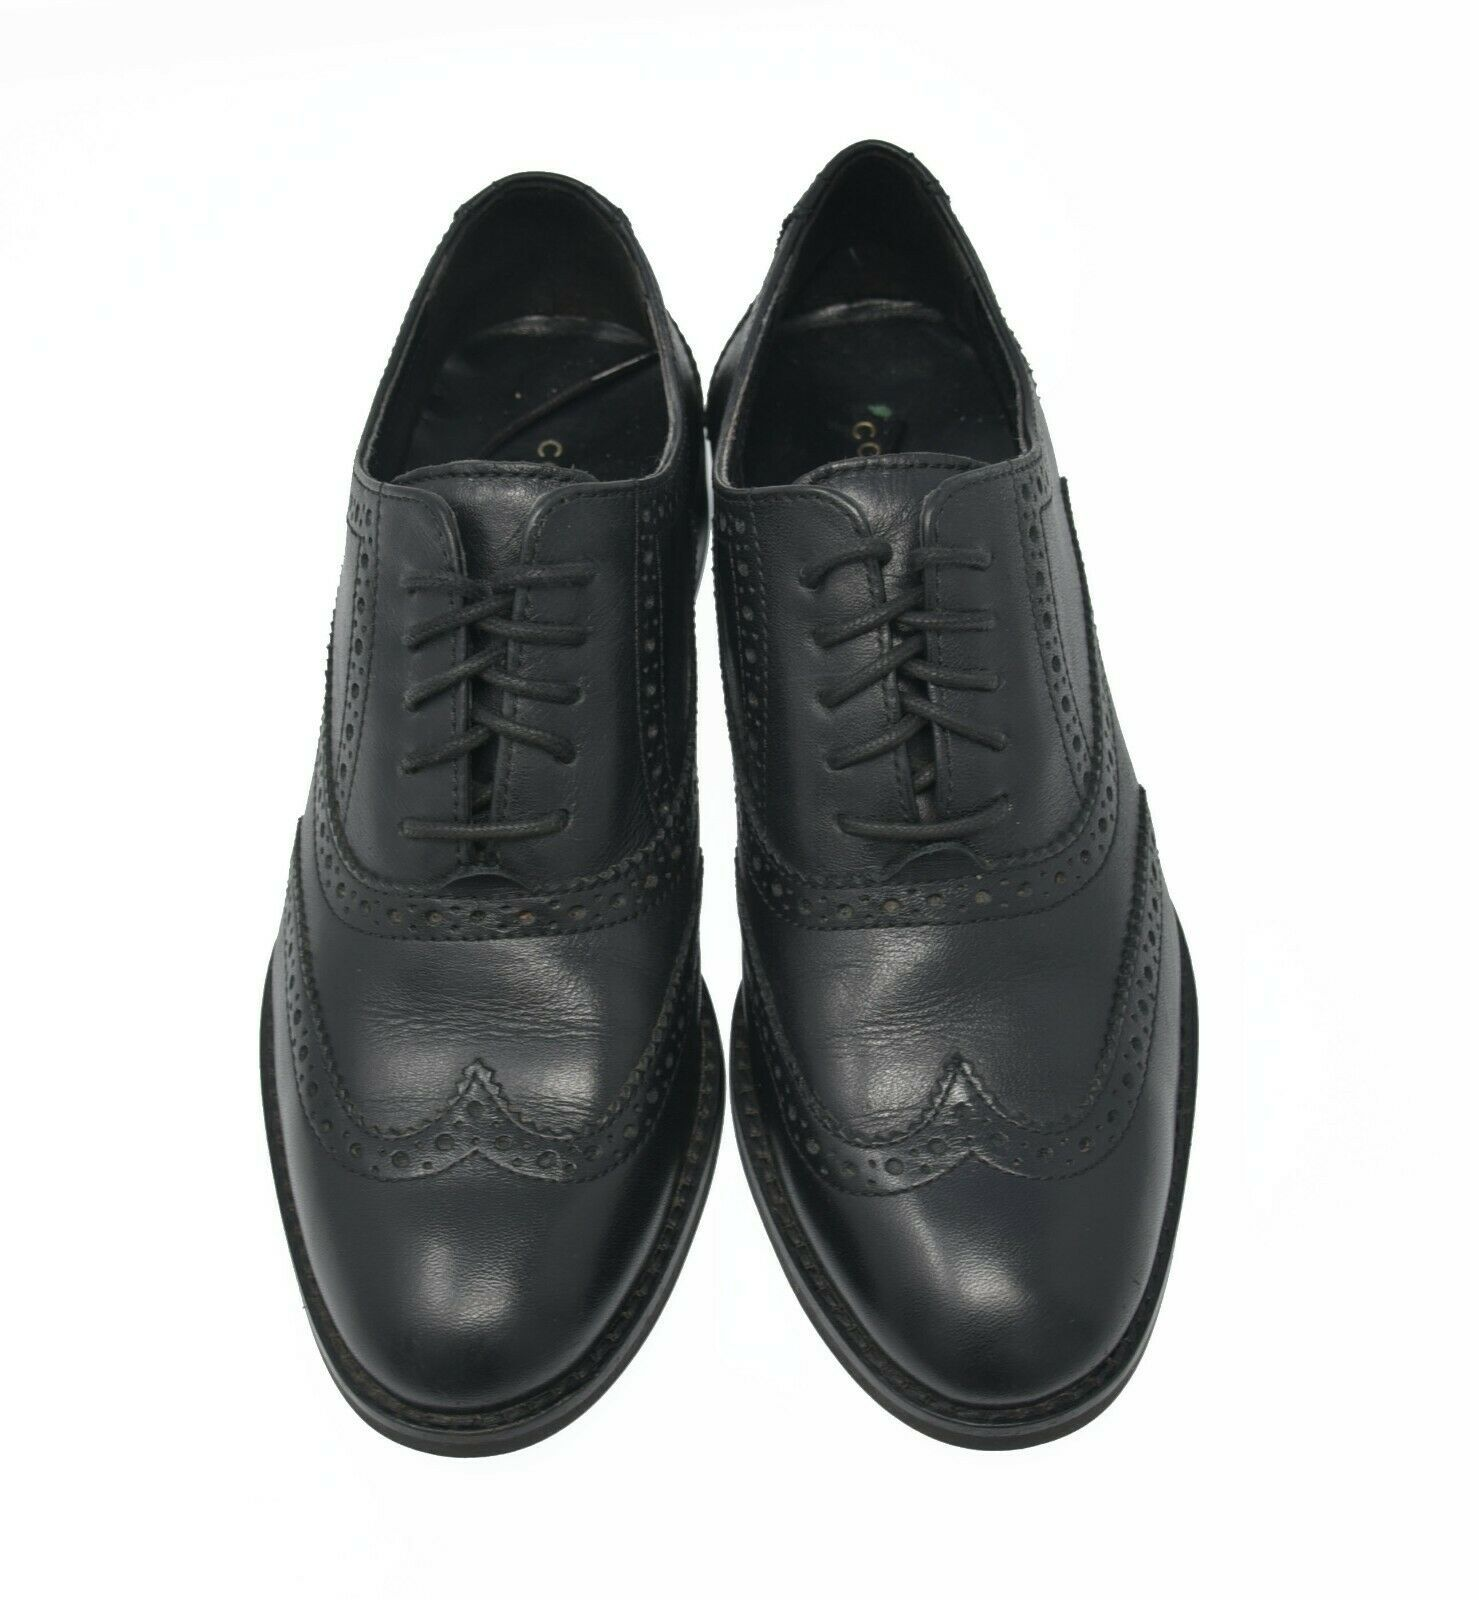 Cole Haan Womens Sz 5.5B Black Leather Lace Up Oxford Wingtip Brogue Dress Shoes